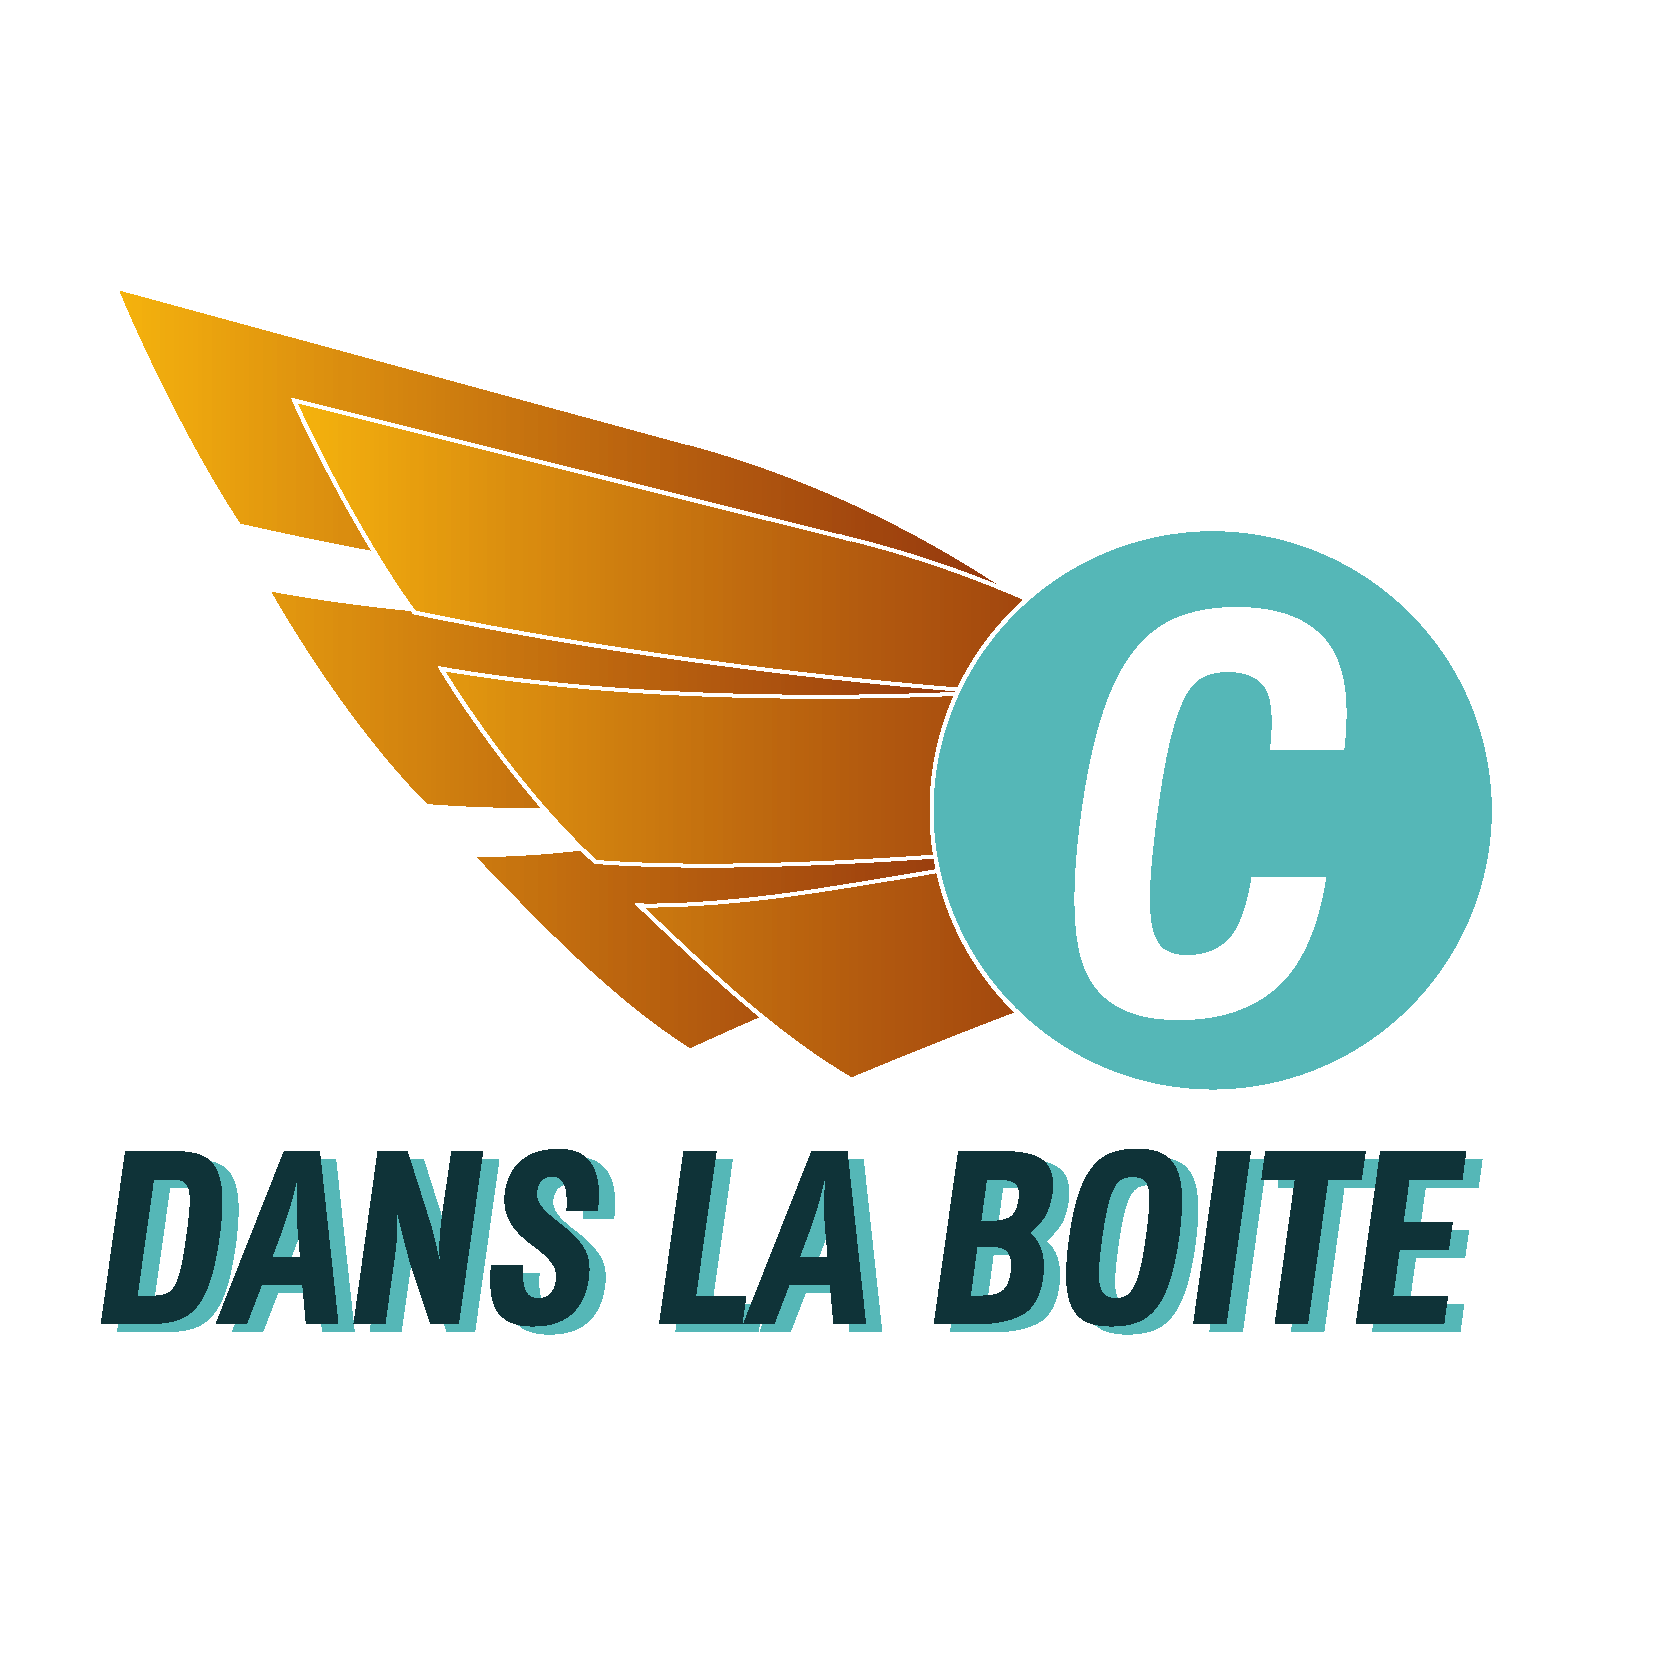 Cdanslaboîte by DOI